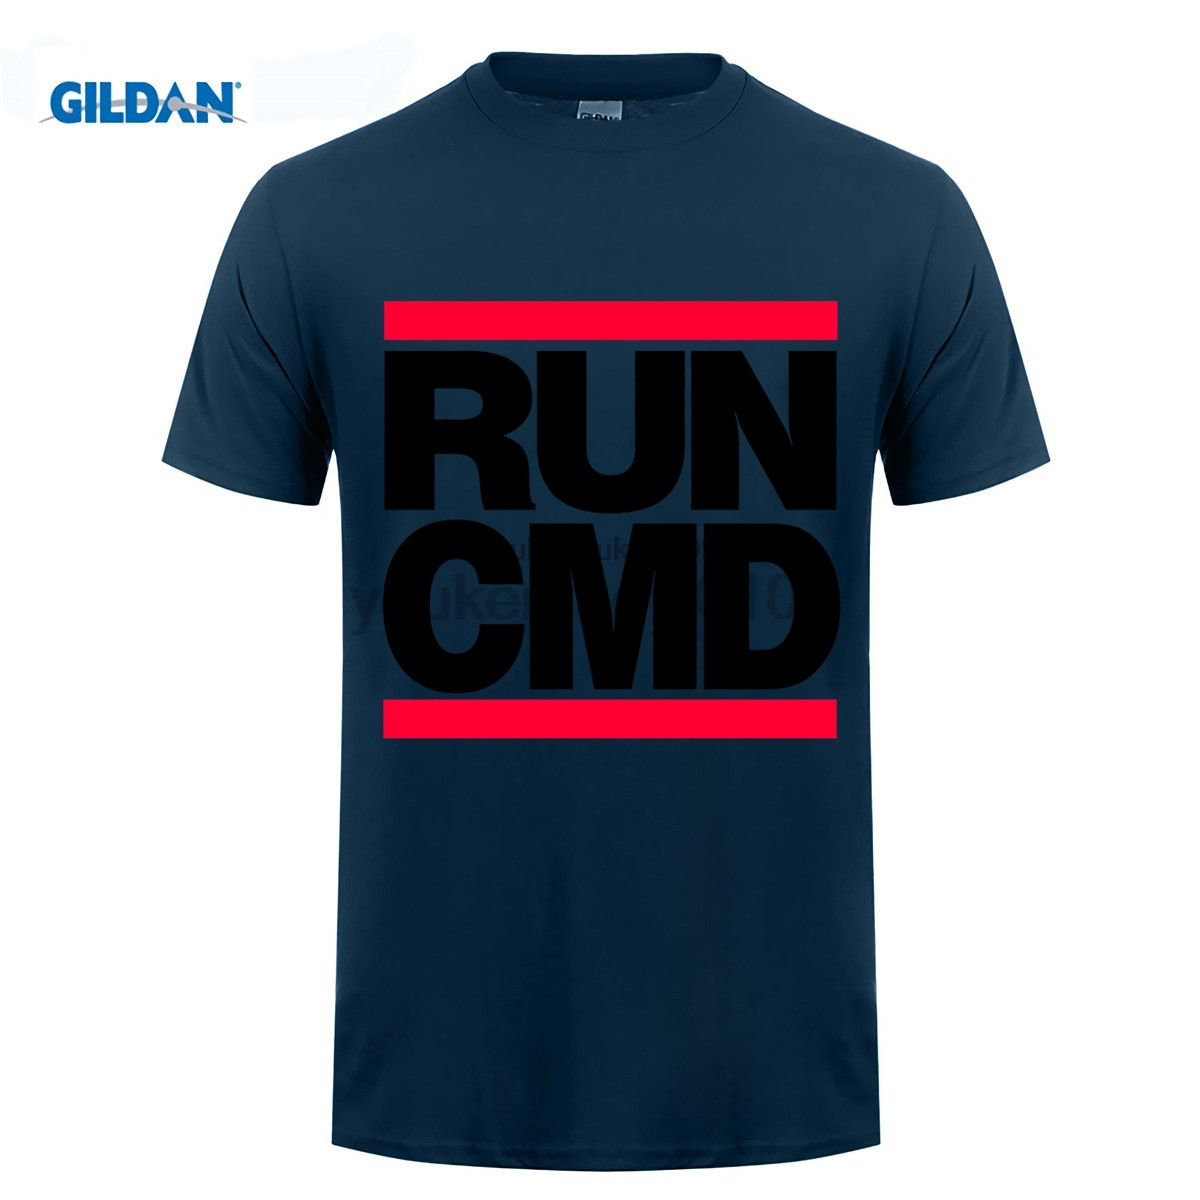 GILDAN Cool T Shirts Crew Neck Short-Sleeve Printing Runinger Cmd Web Developer Pc Gamer Geek Shirt